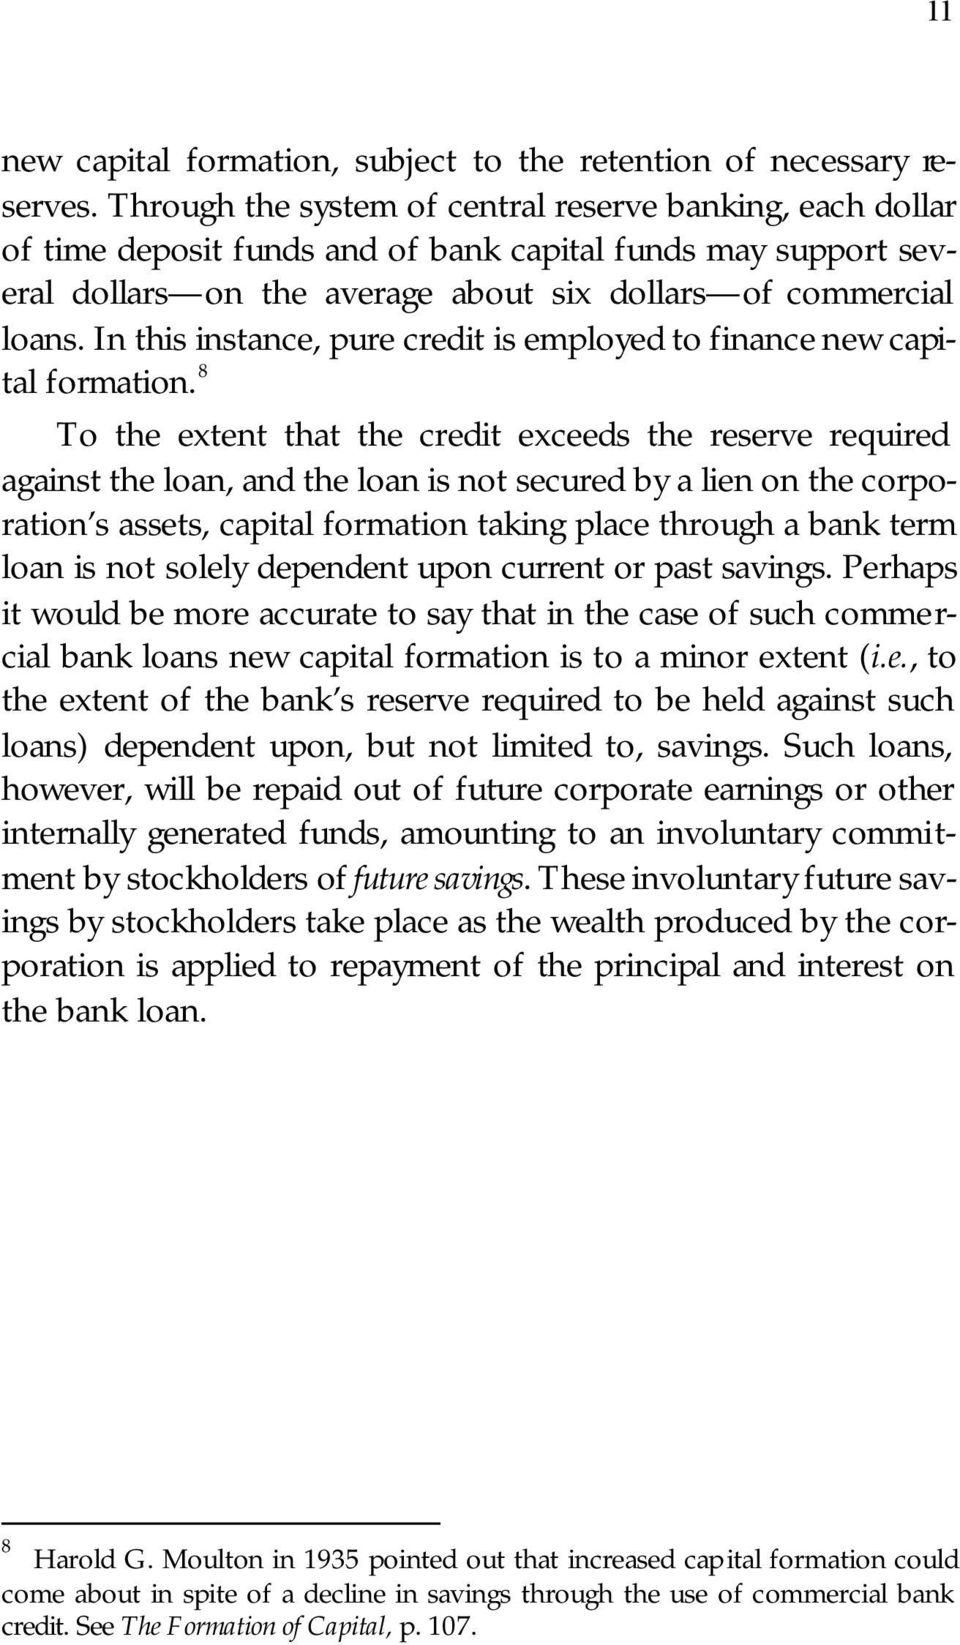 In this instance, pure credit is employed to finance new capital formation.